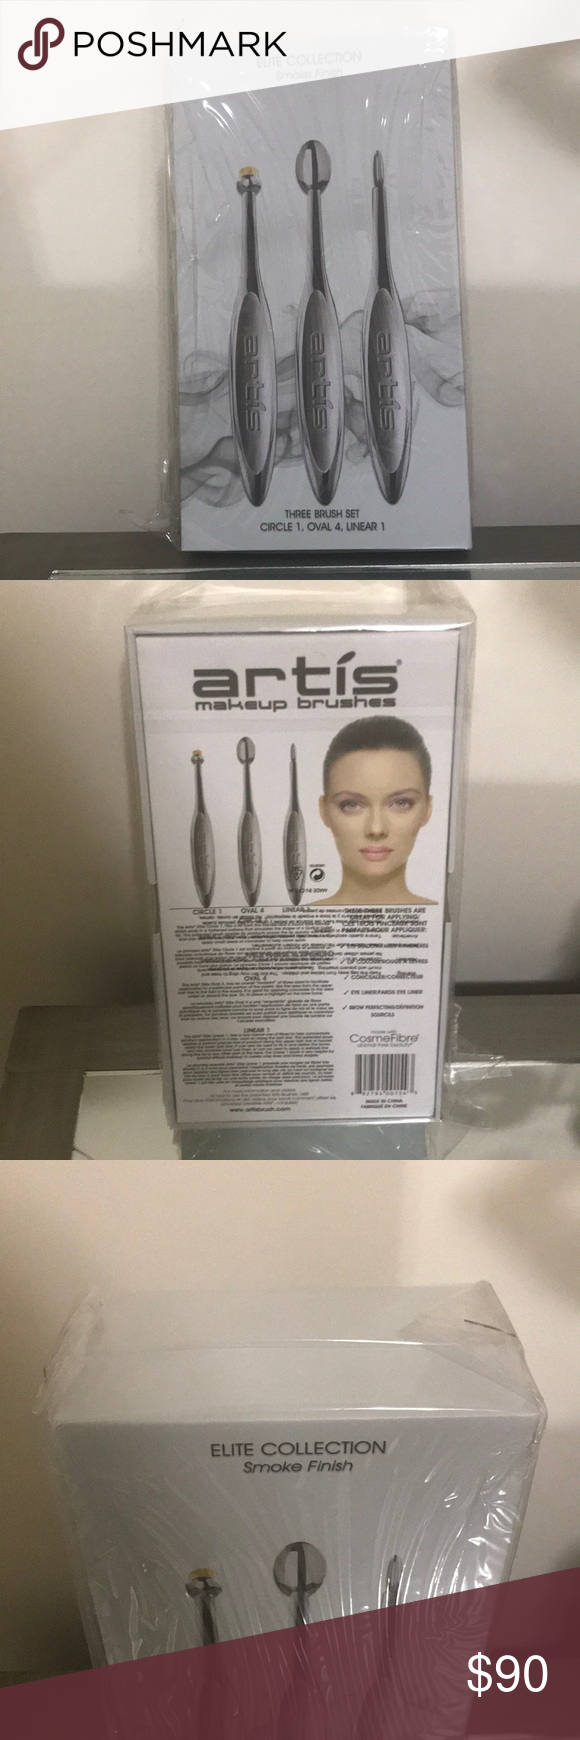 Artís Makeup Brushes Smoke Finish Artis makeup brushes